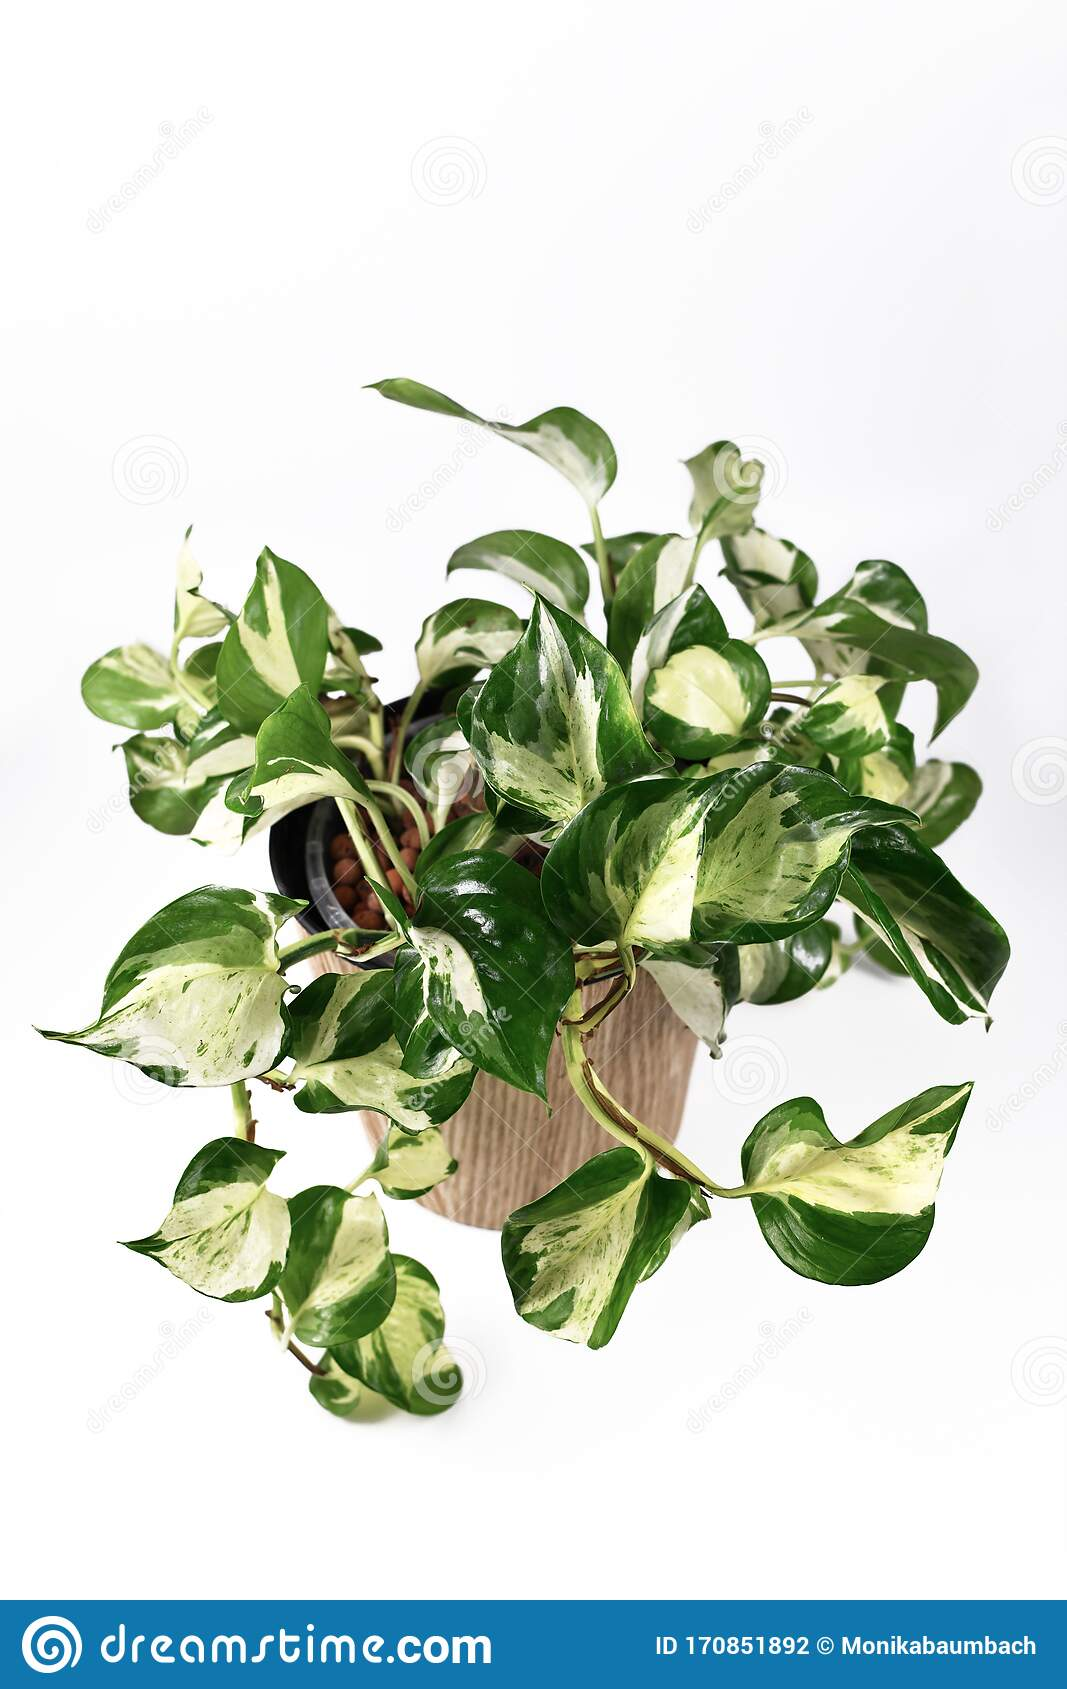 Tropical Manjula Pothos House Plant Also Called Happy Leaves In Natural Flower Pot On White Background Stock Photo Image Of Healthy Houseplant 170851892